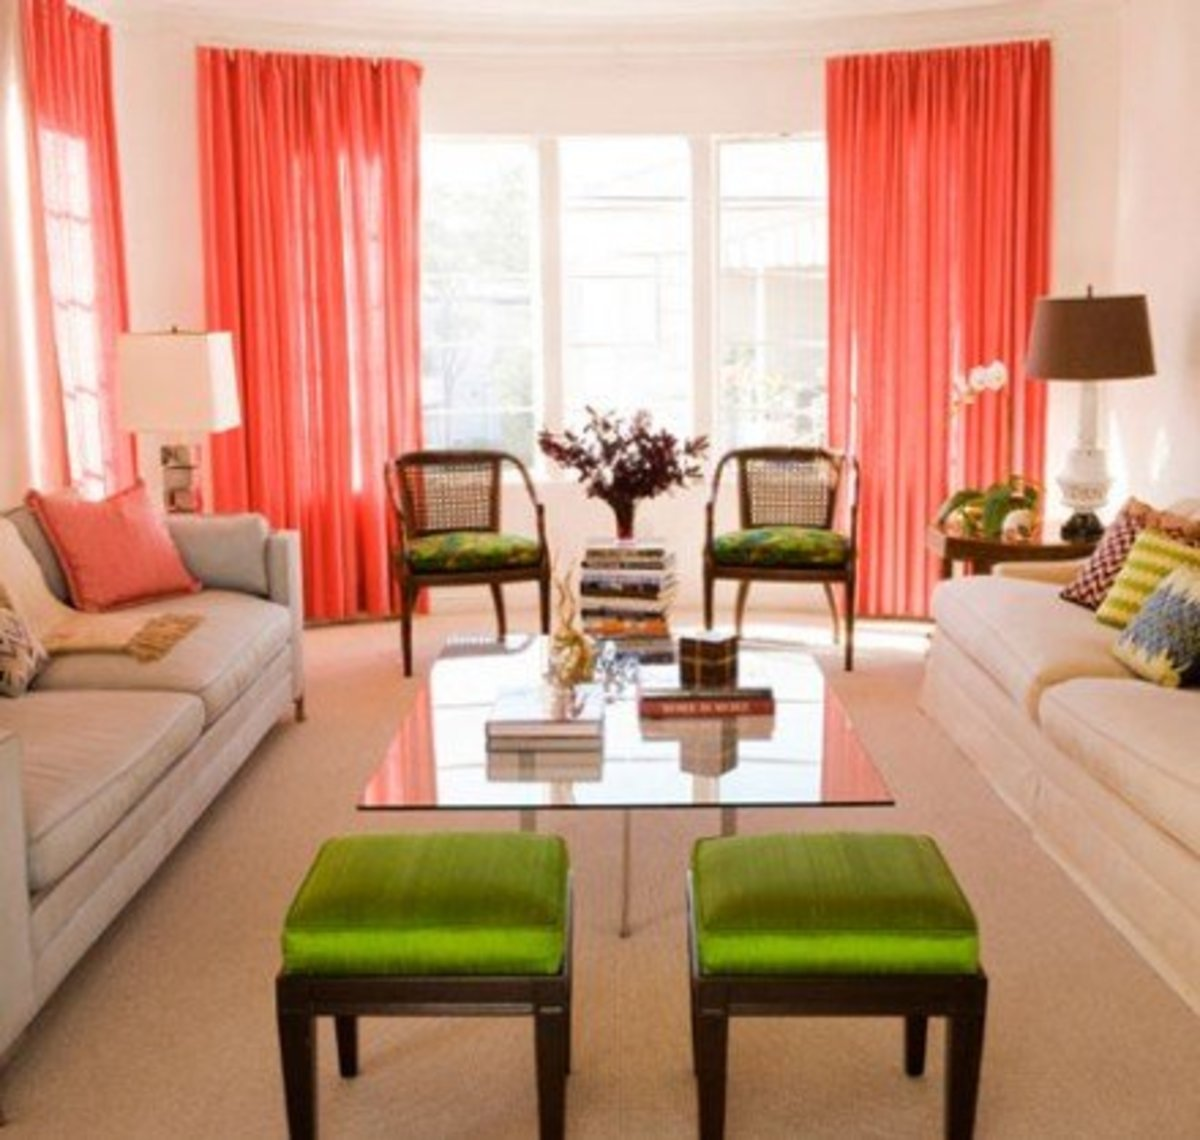 Coral and Lime Green Theme.Window Drapes and Decorative Pillows. Breathtaking!